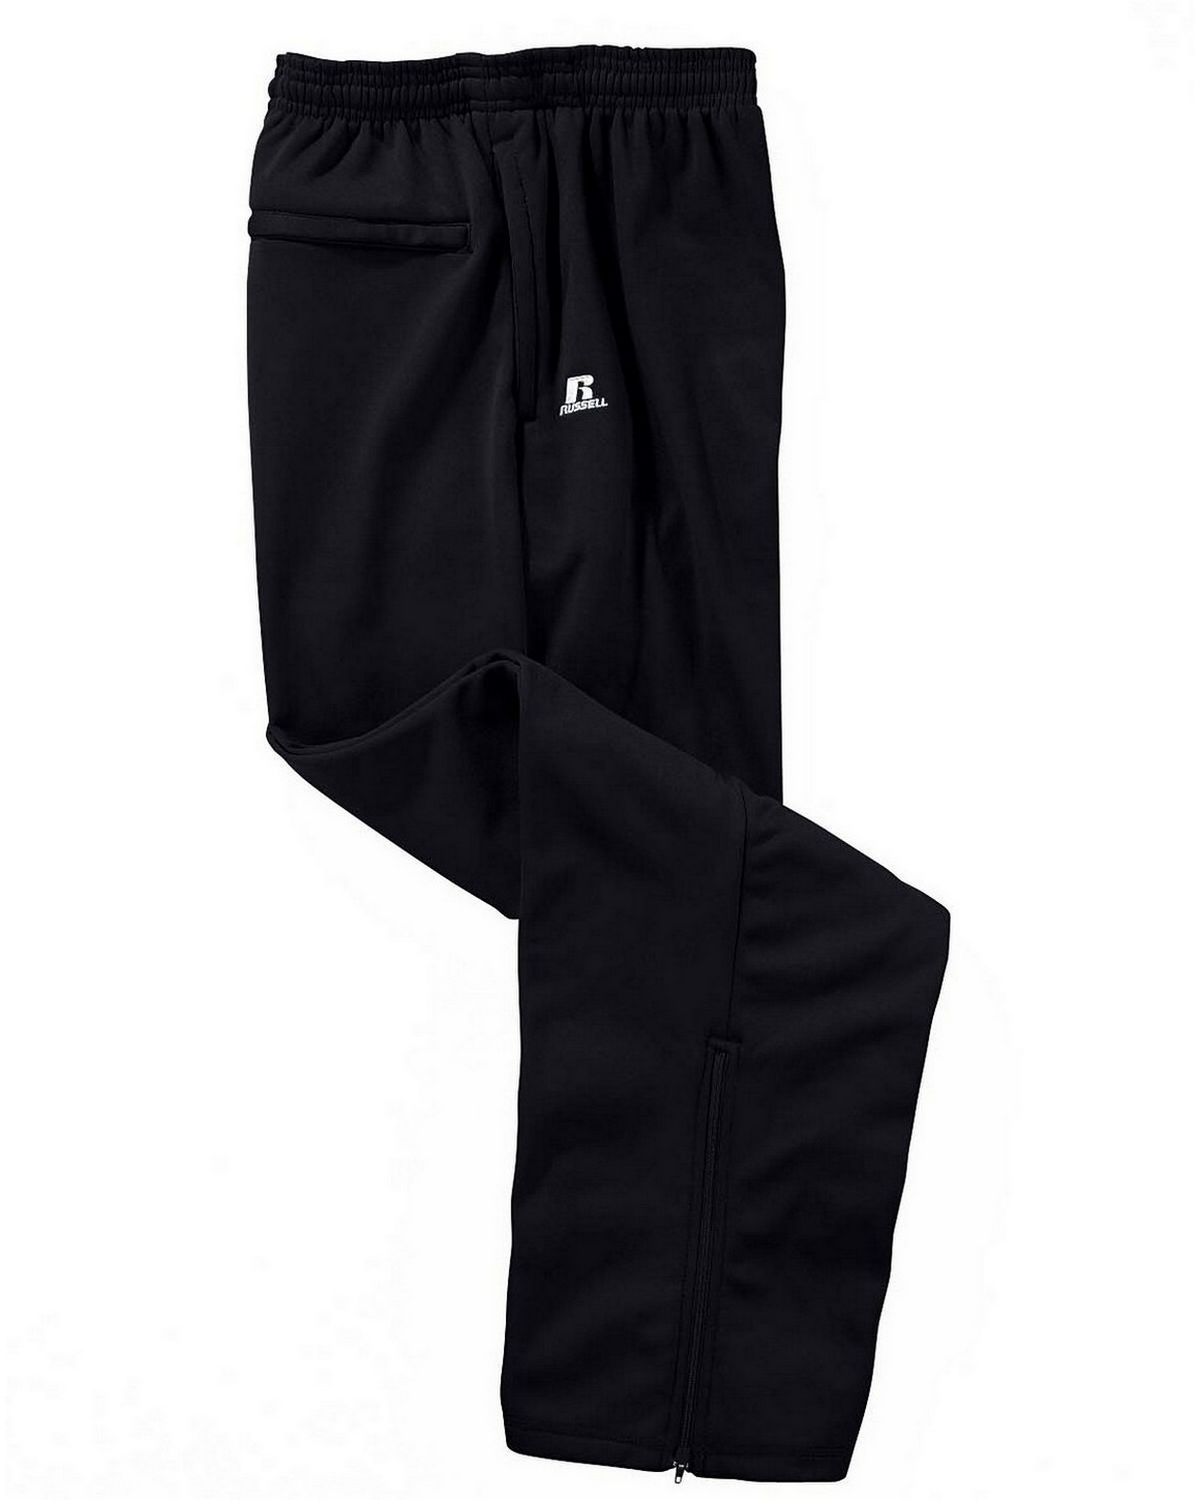 Russell Athletic 838EFM Tech Fleece Pant - Stealth - S 838EFM